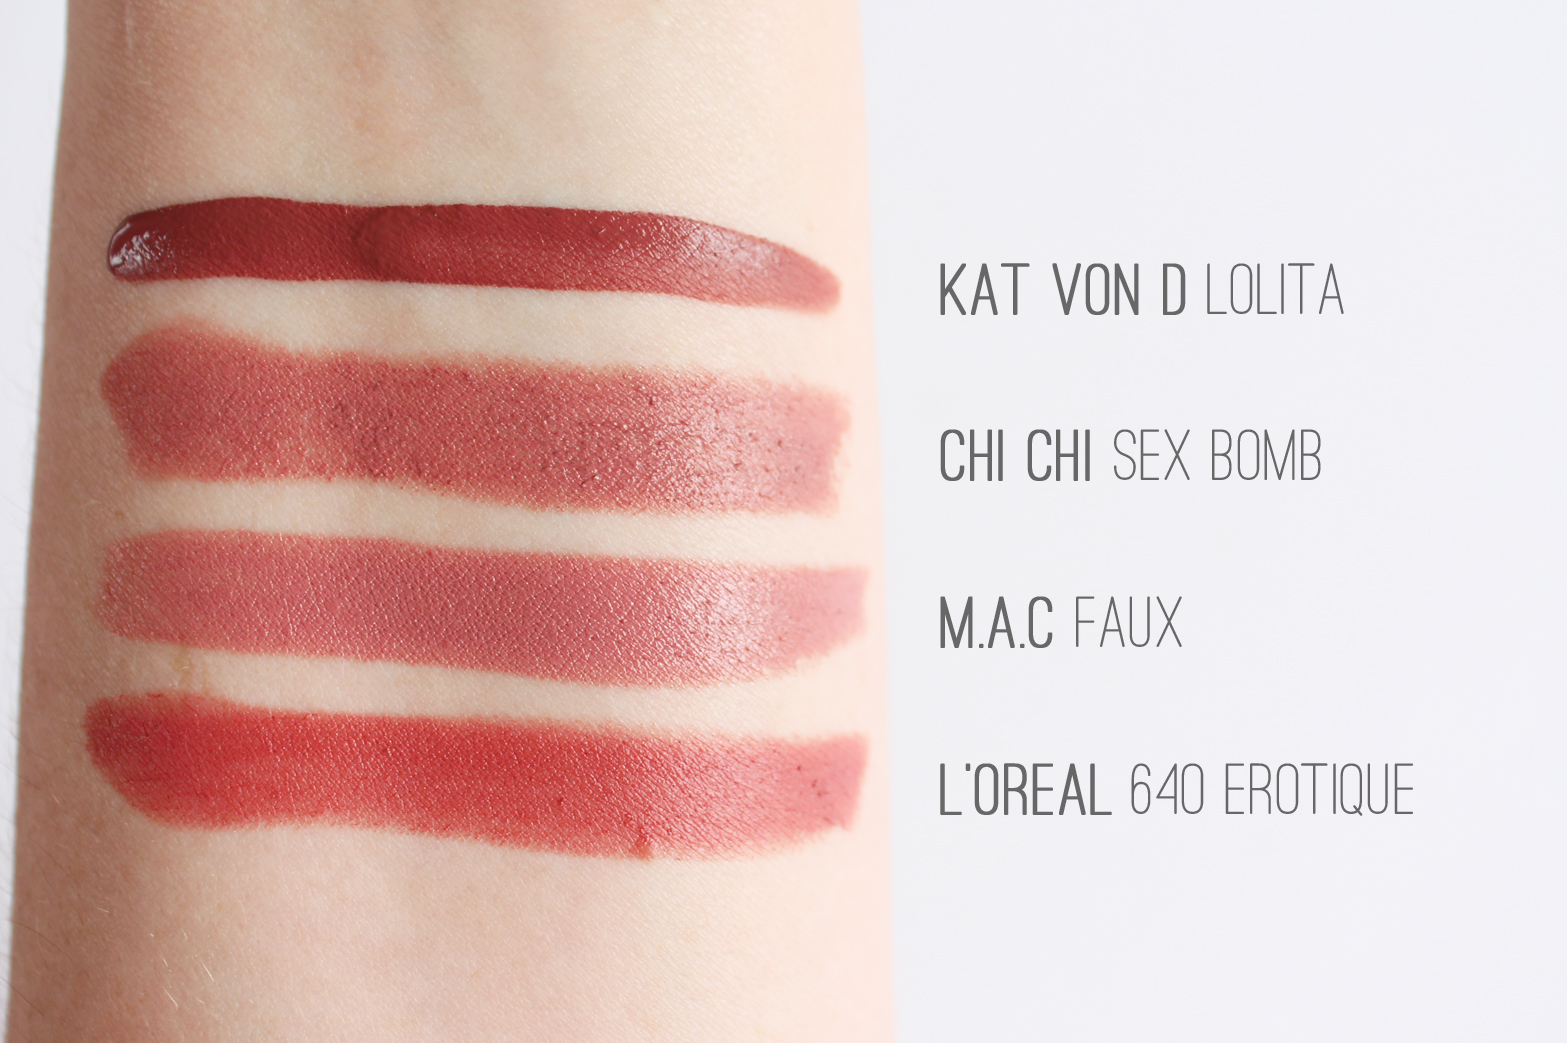 THINGS I LIKE #001 | Nude Lipsticks - Kat Von D, Chi Chi, M.A.C, L'Oreal - CassandraMyee